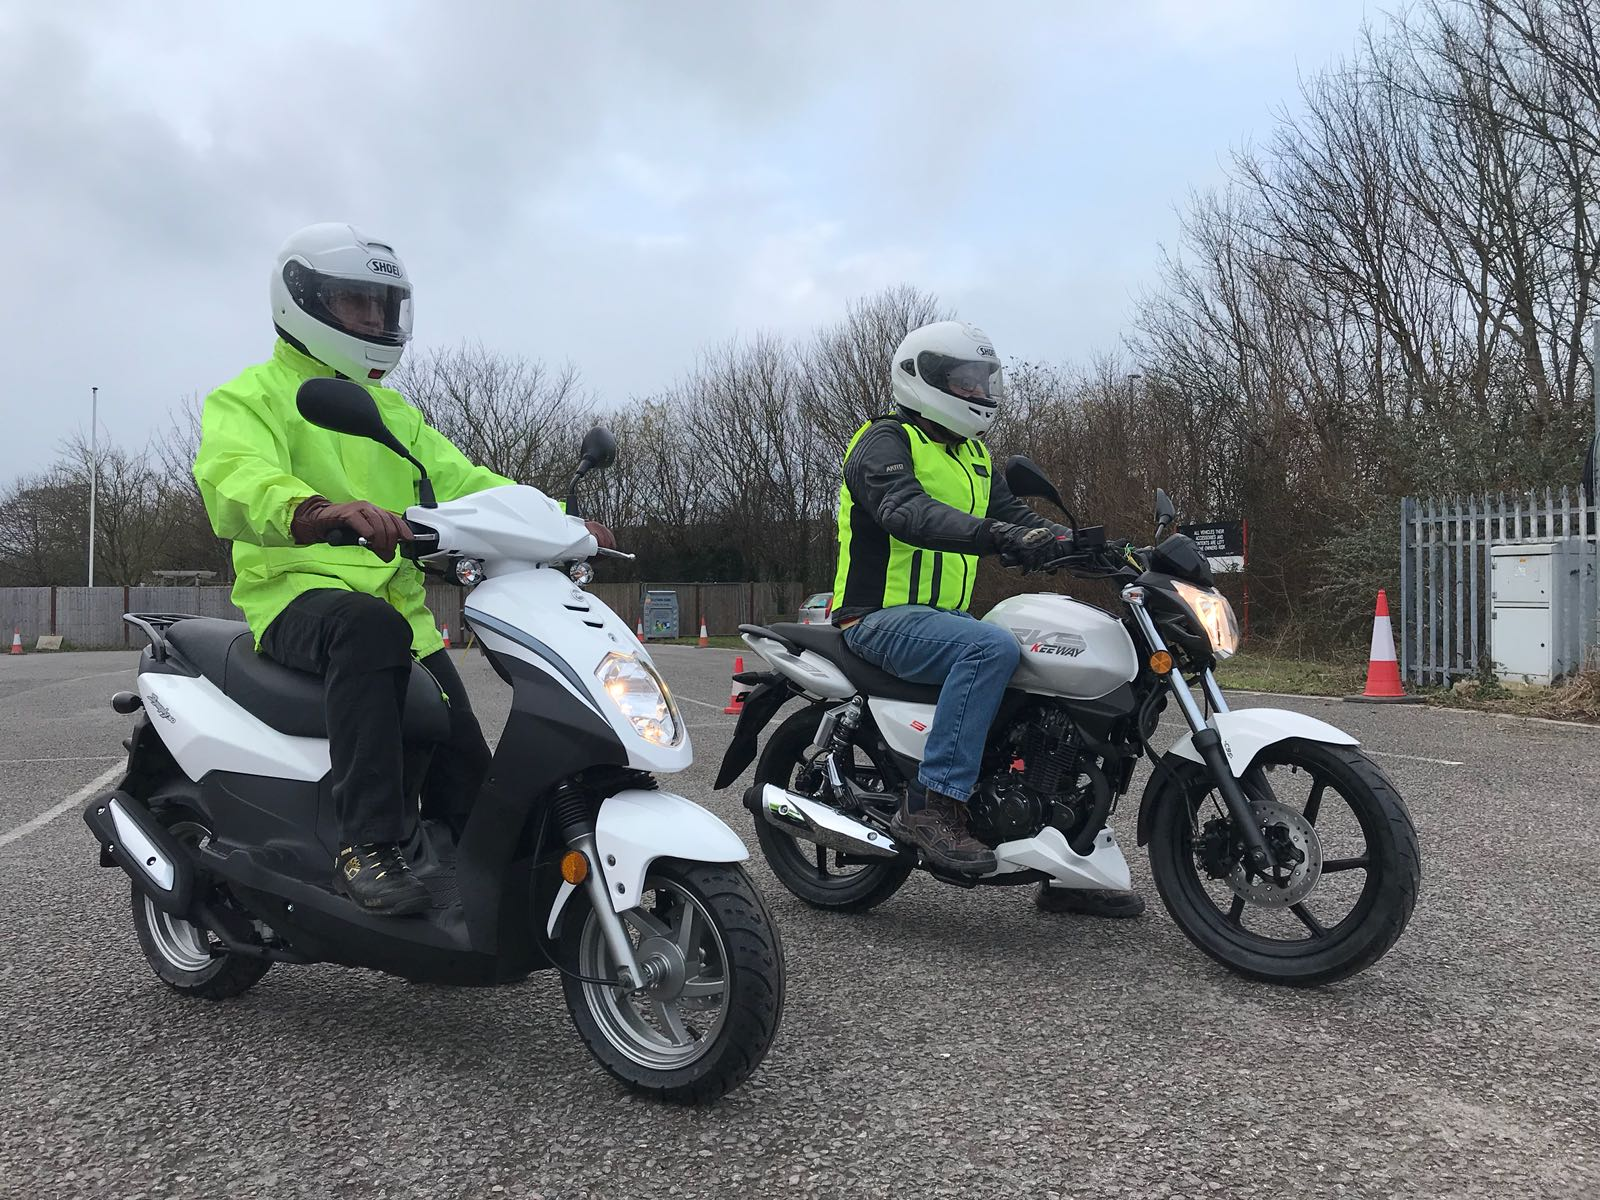 Cbt Motorcycle And Moped Training